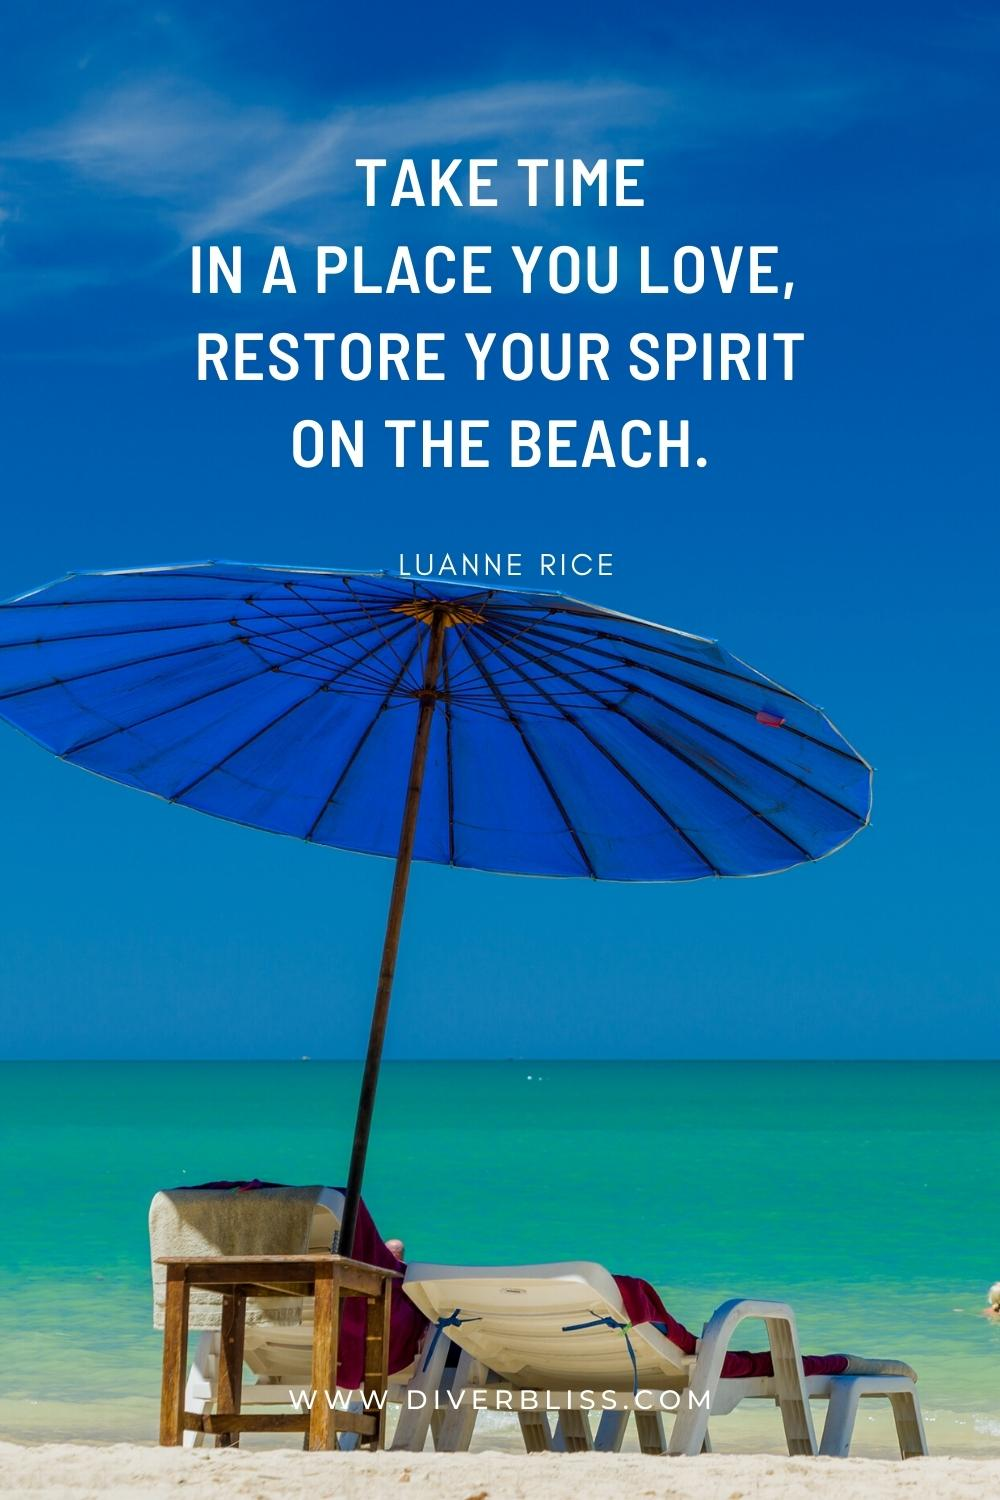 """""""Take time in a place you love, restore your spirit on the beach."""" —Luanne Rice"""